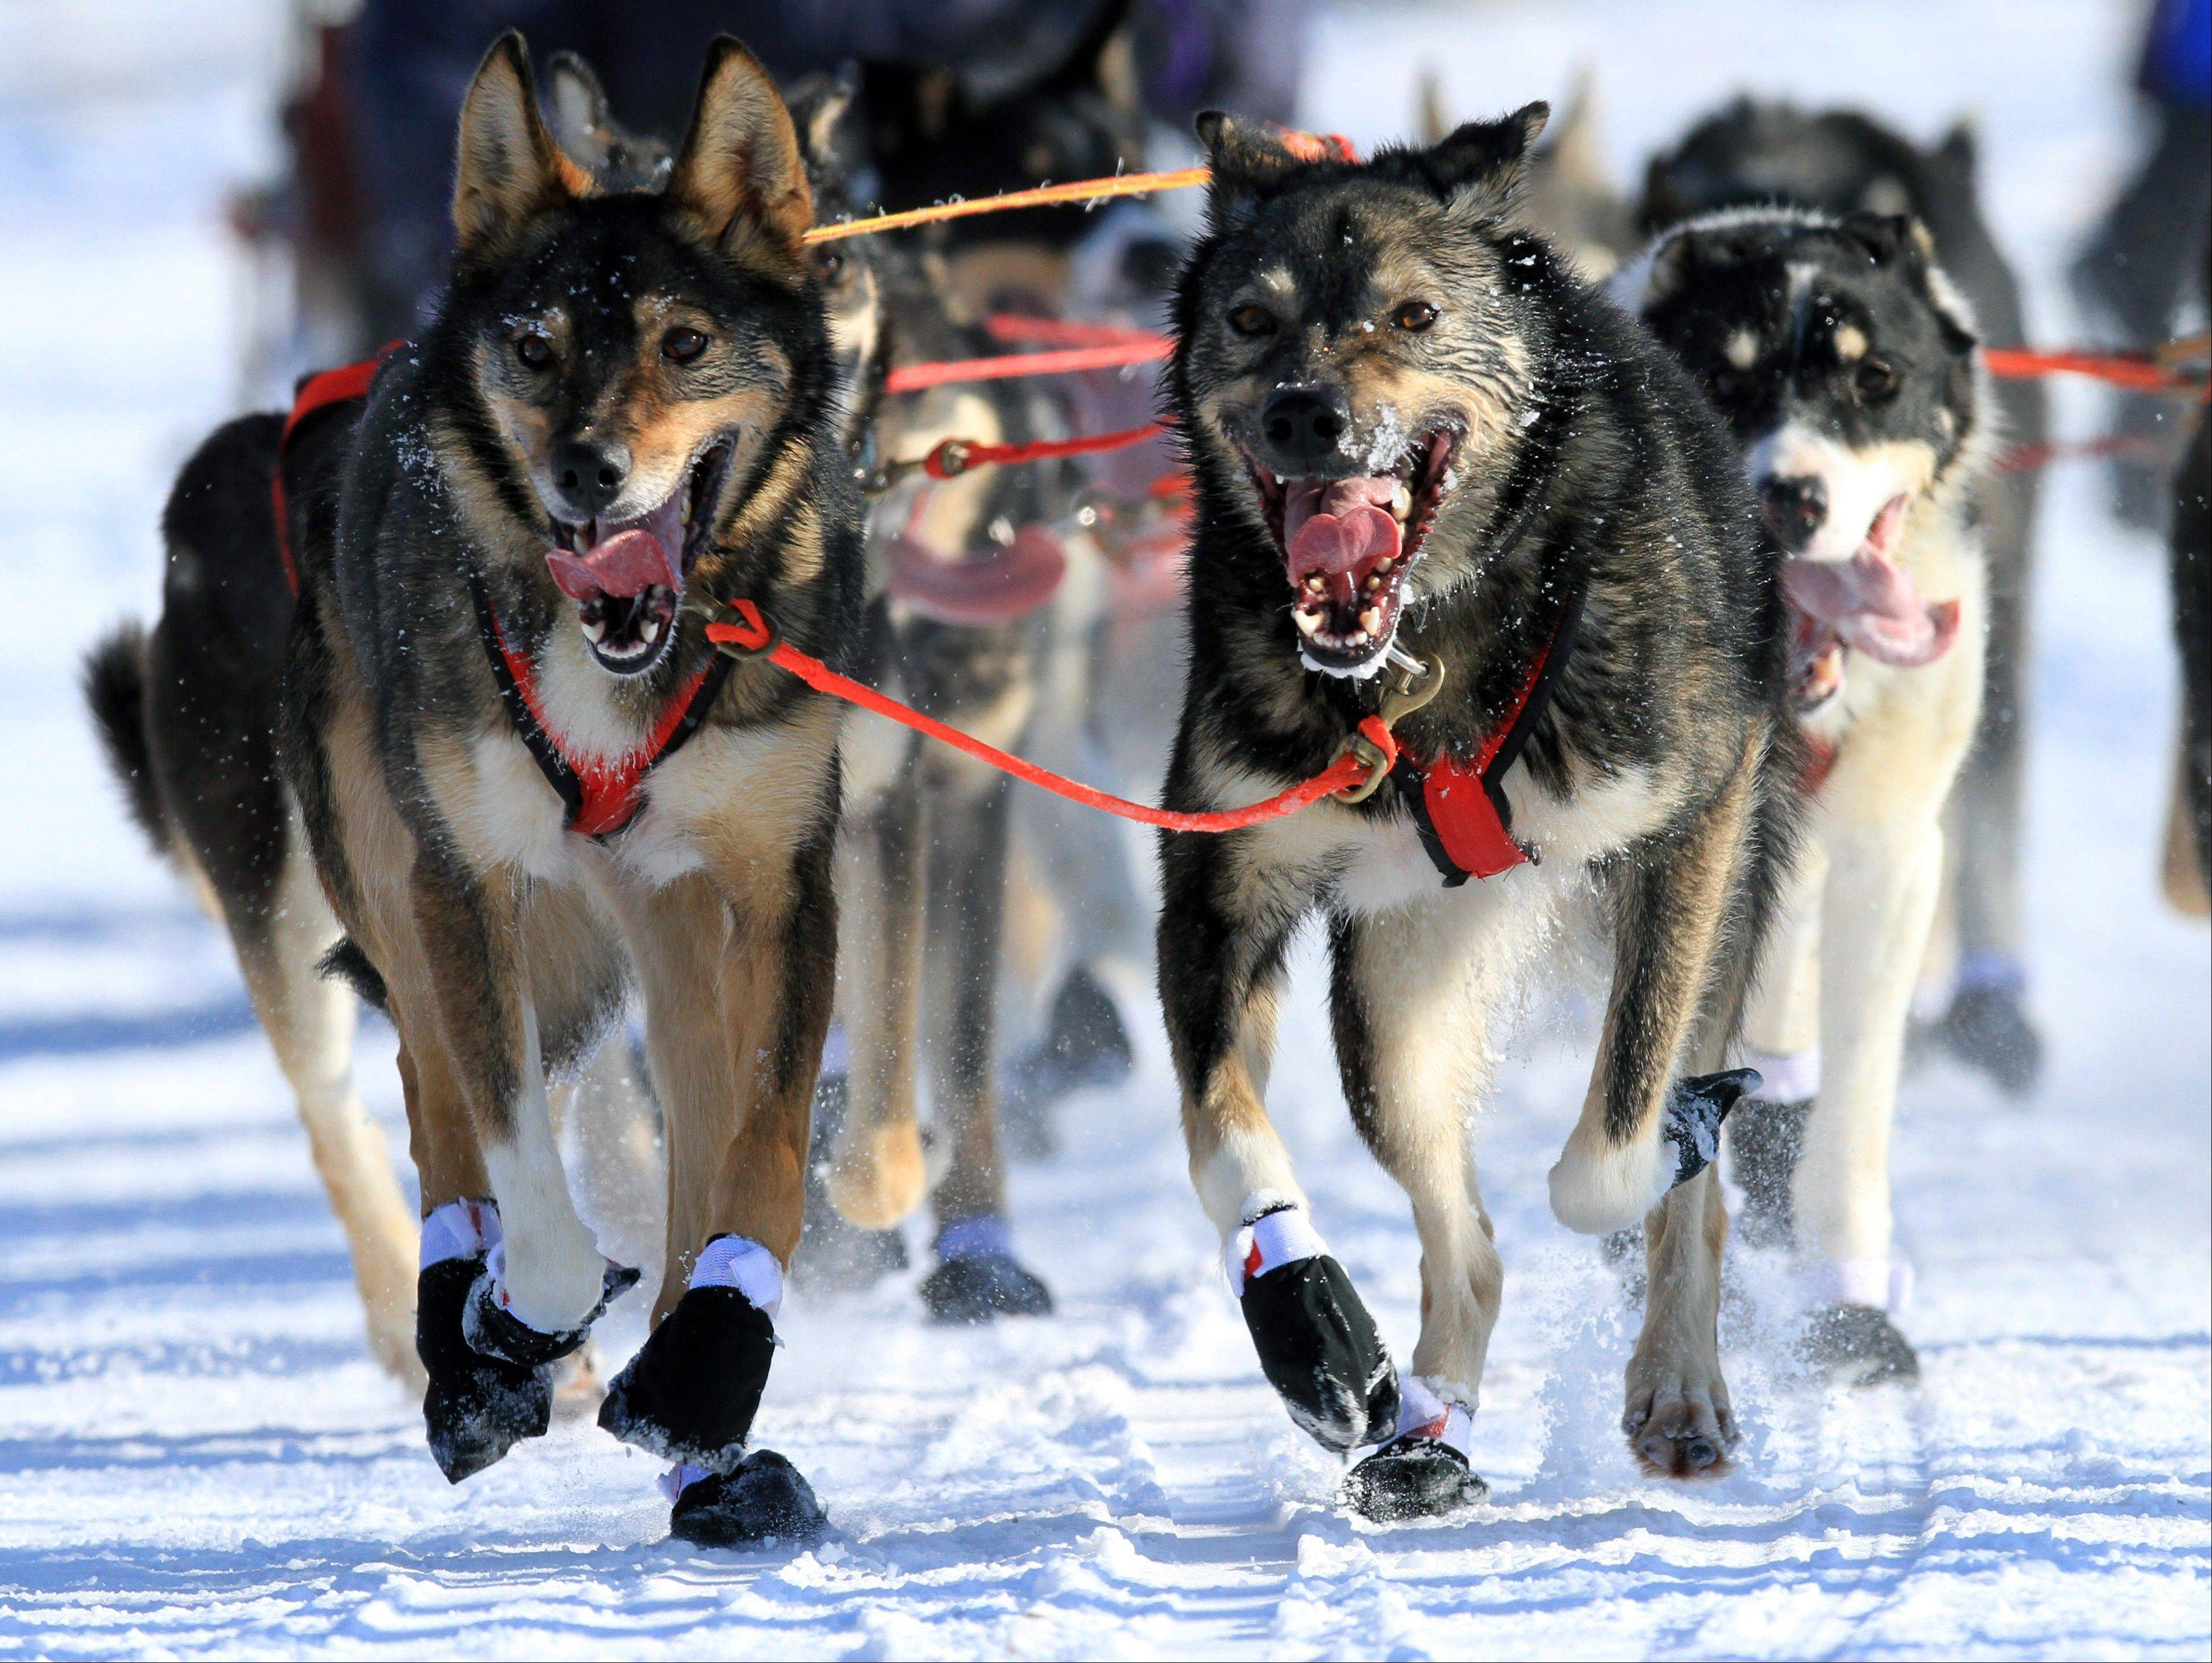 The ceremonial start of the Iditarod Trail Sled Dog Race was Saturday in Anchorage, Alaska. The 1,000-mile race begins Sunday in Willow, Alaska. Among this year's mushers is Charley Bejna of Addison.